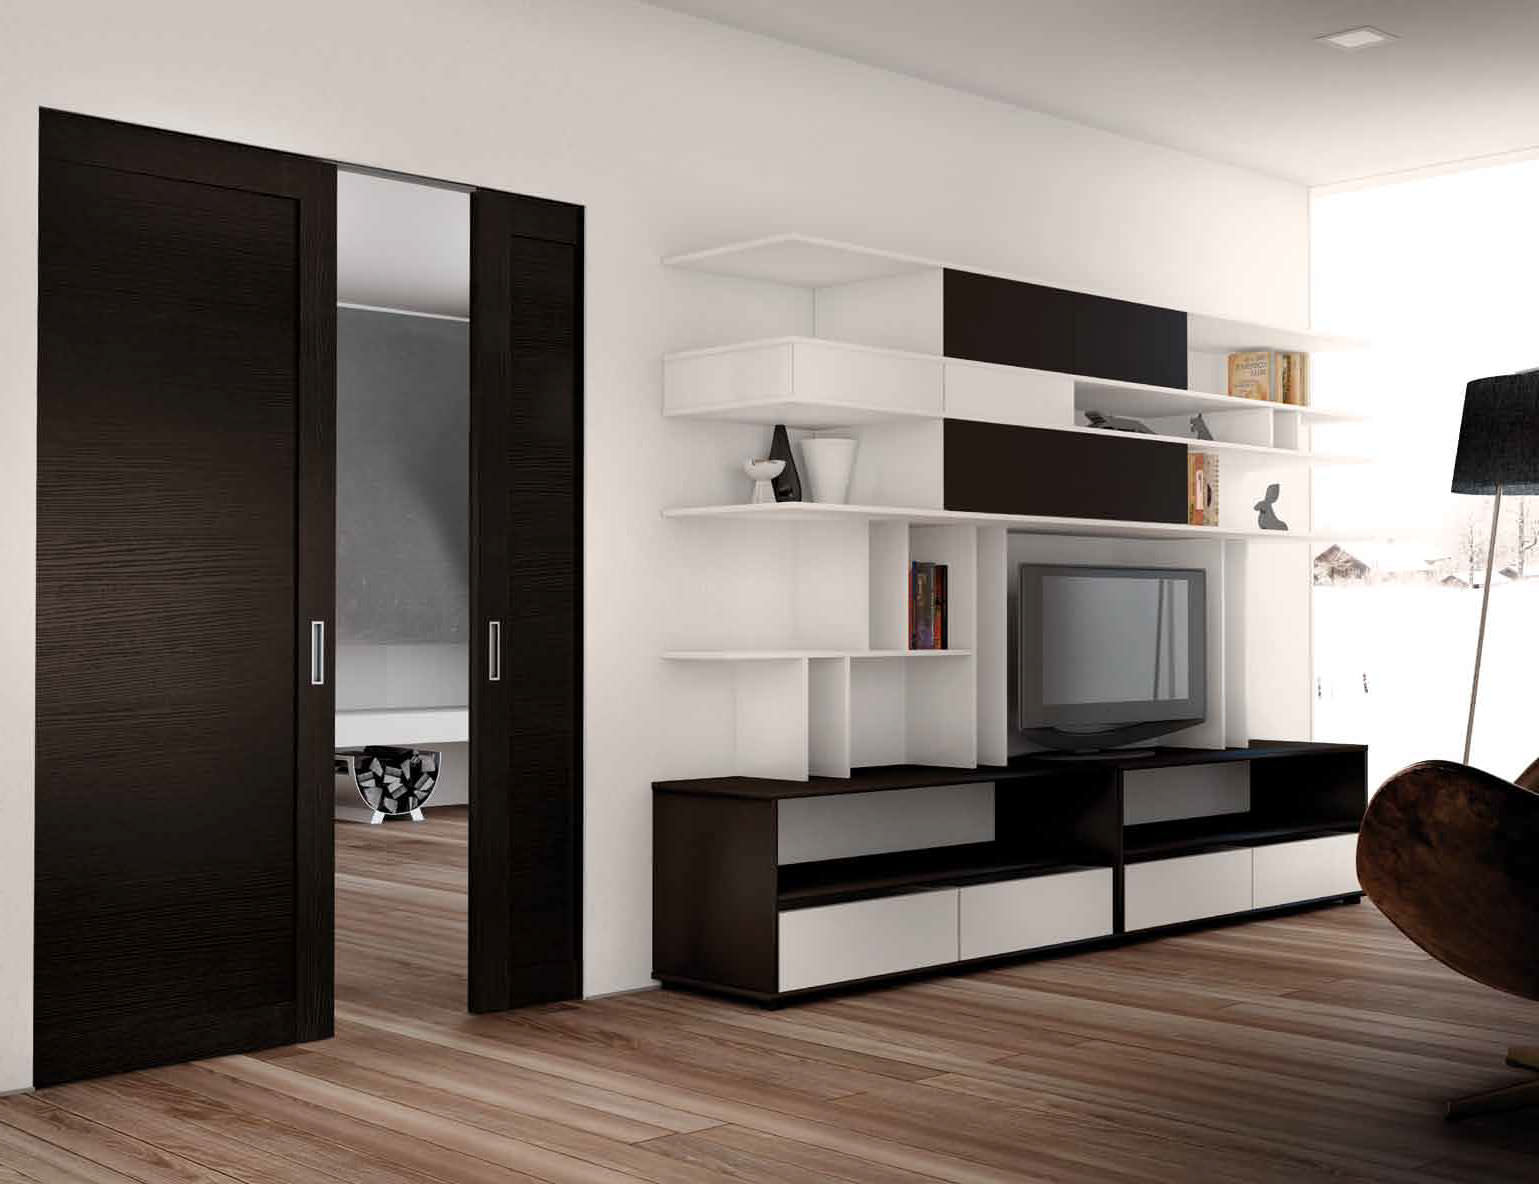 Interior wooden pocket doors are fashionable